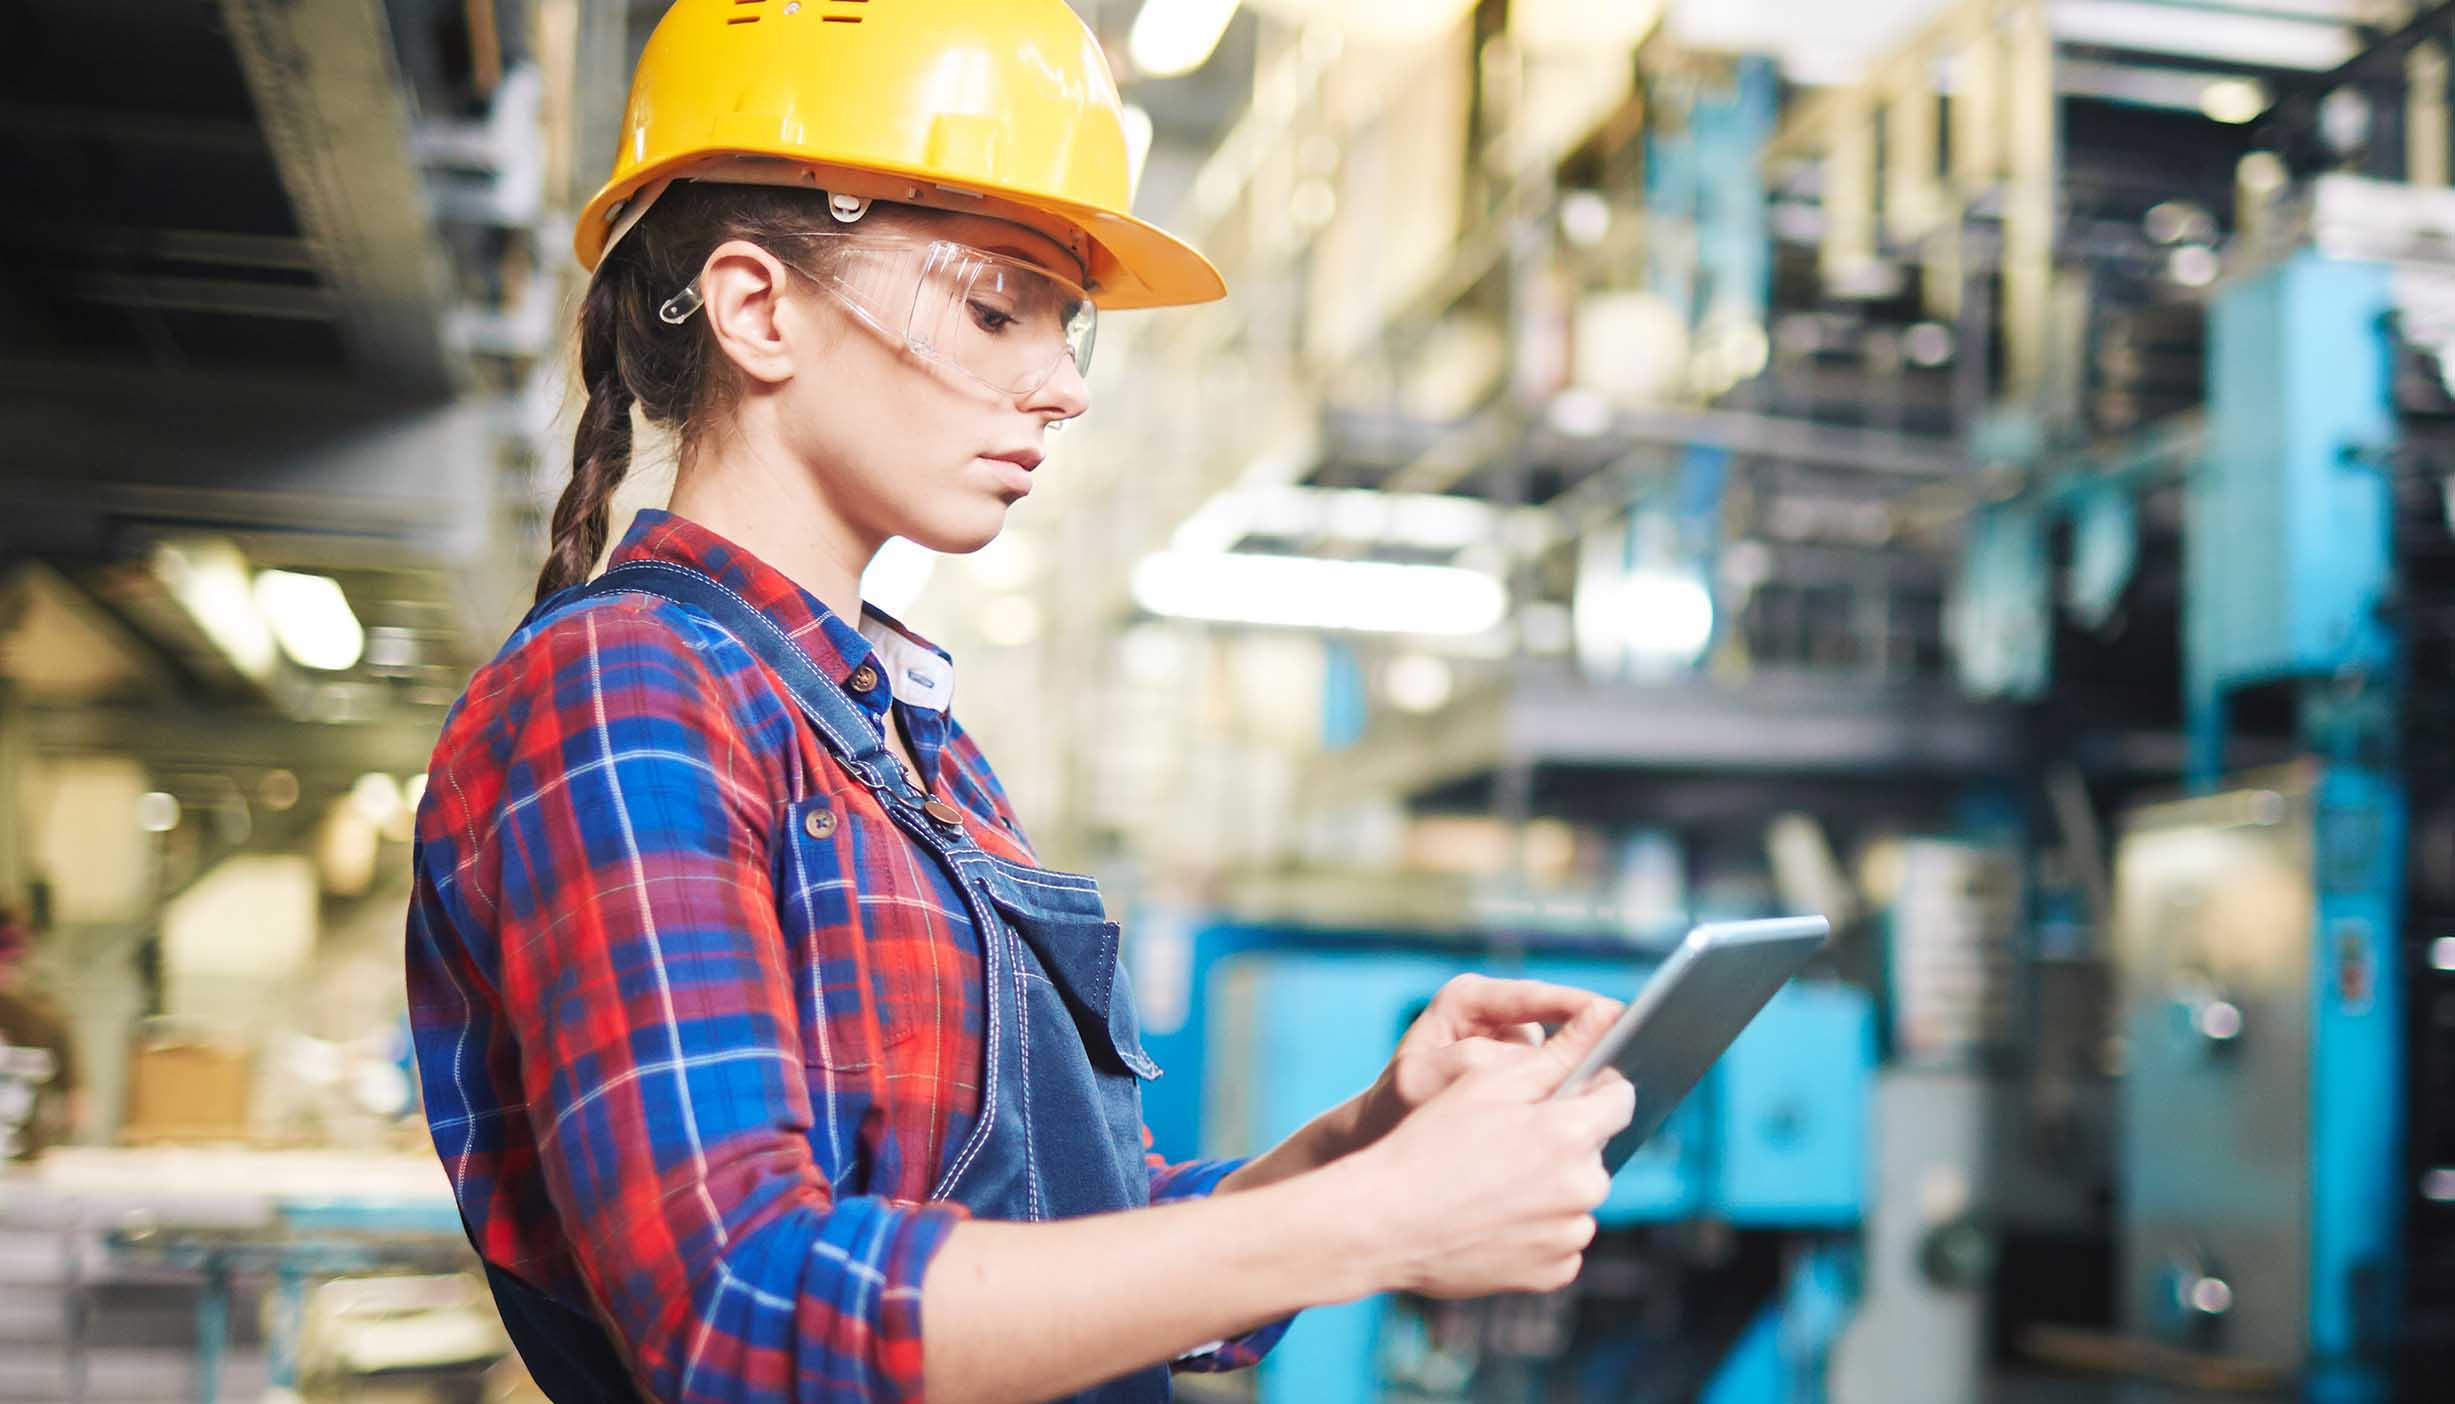 HMI/SCADA software solutions for manufacturing | GE Digital